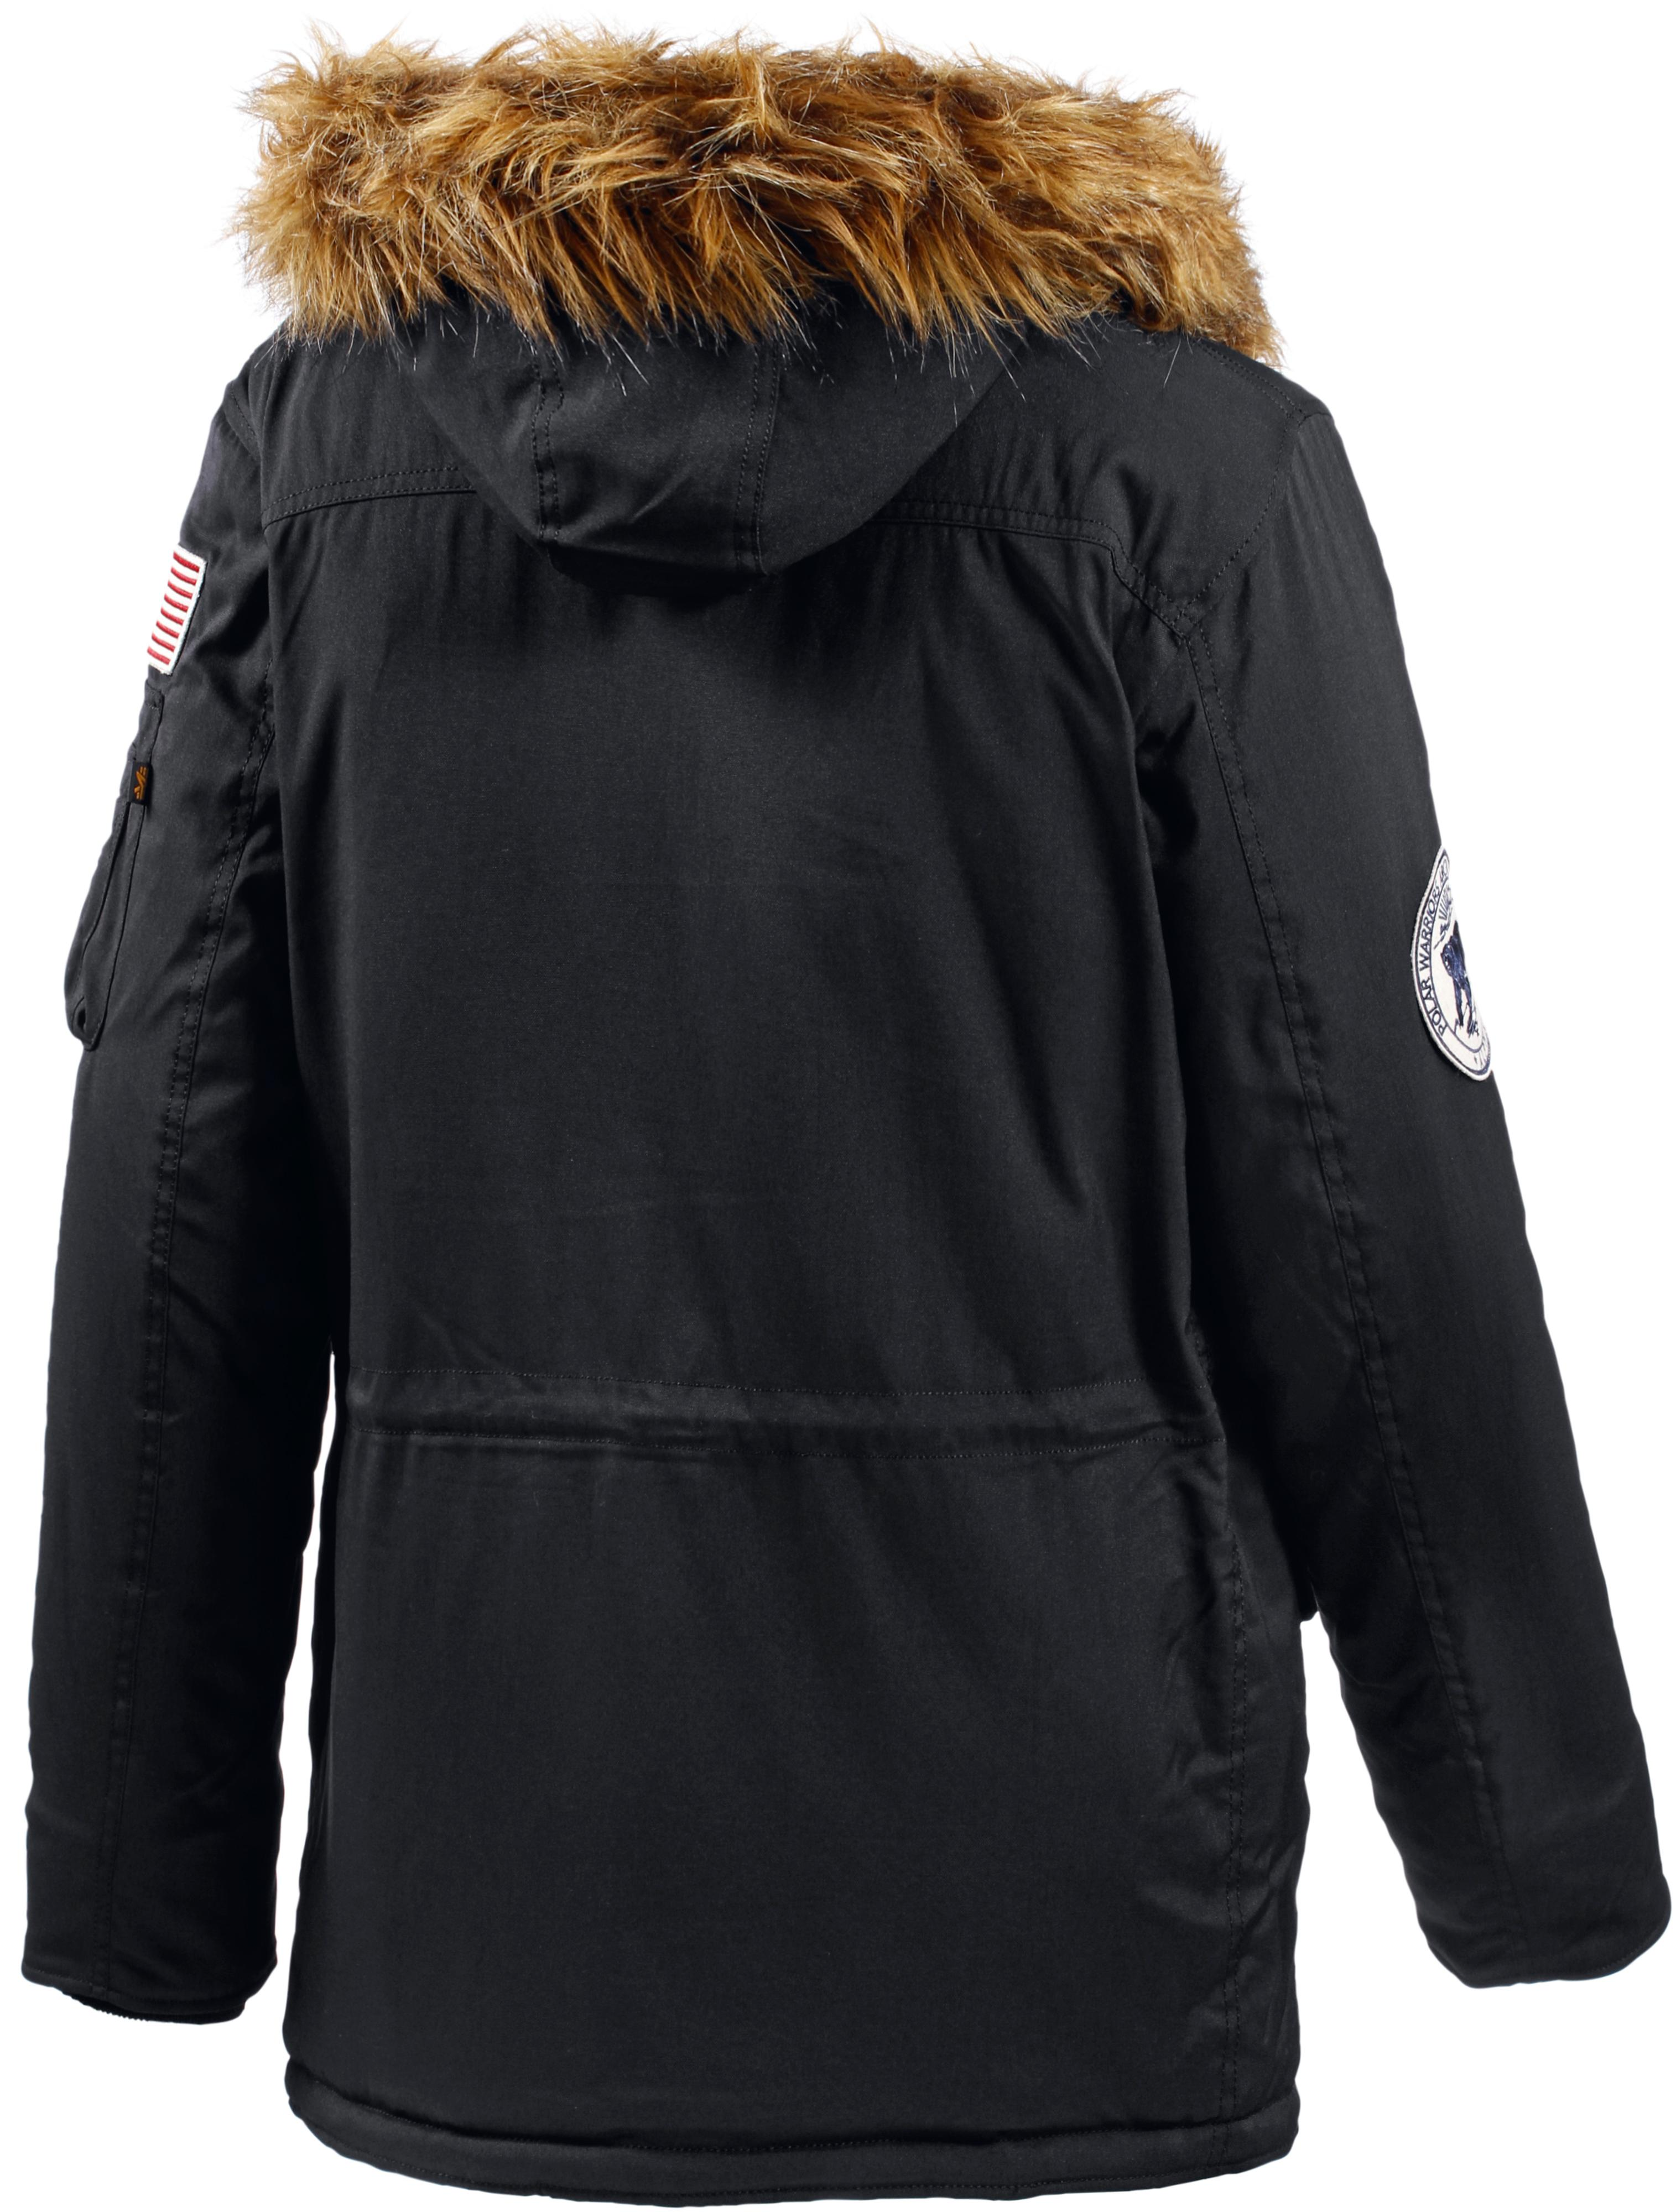 Alpha Industries Herren Winterjacke Polar